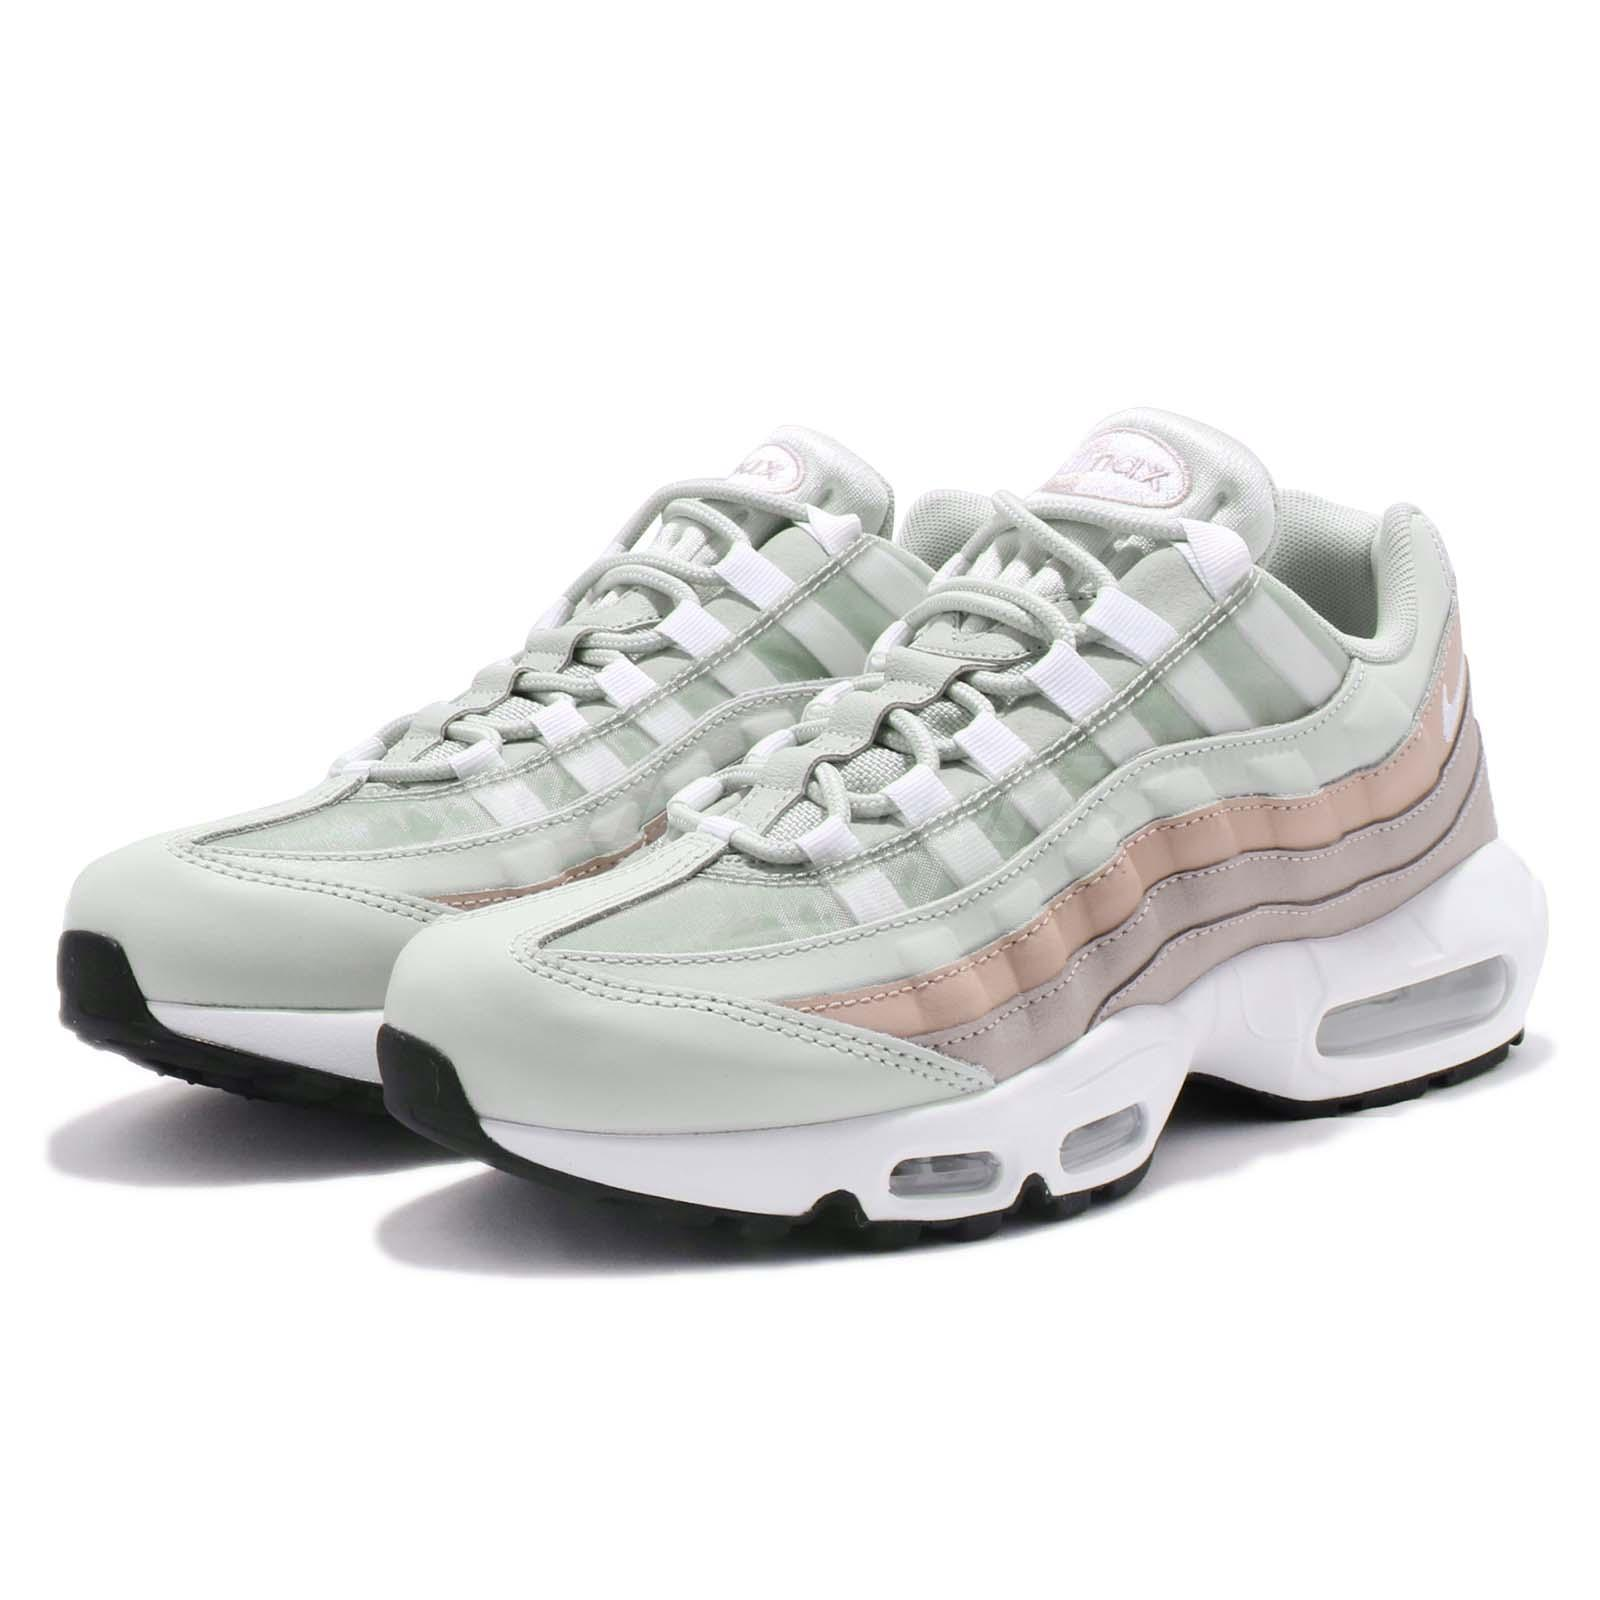 Details about Nike Wmns Air Max 95 Moon Particle Light Silver Women Running Shoes 307960 018